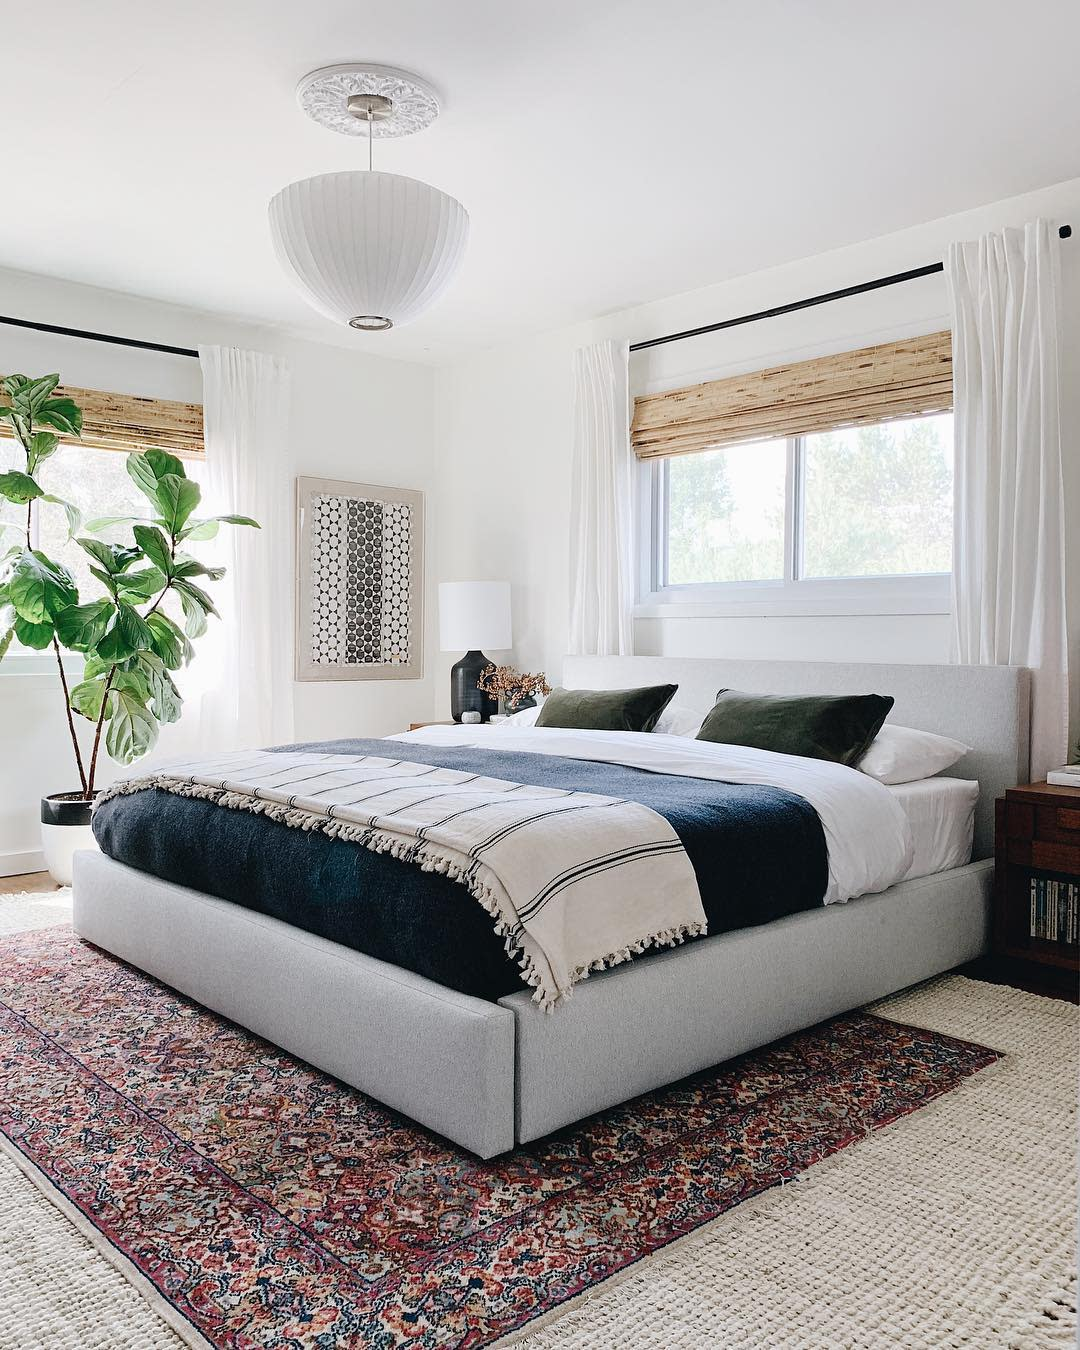 White Walls painted in Whipped, a warm white paint color by Clare, make this bedroom feel warm and inviting.  Lots of texture and plants add a cozy vibe.